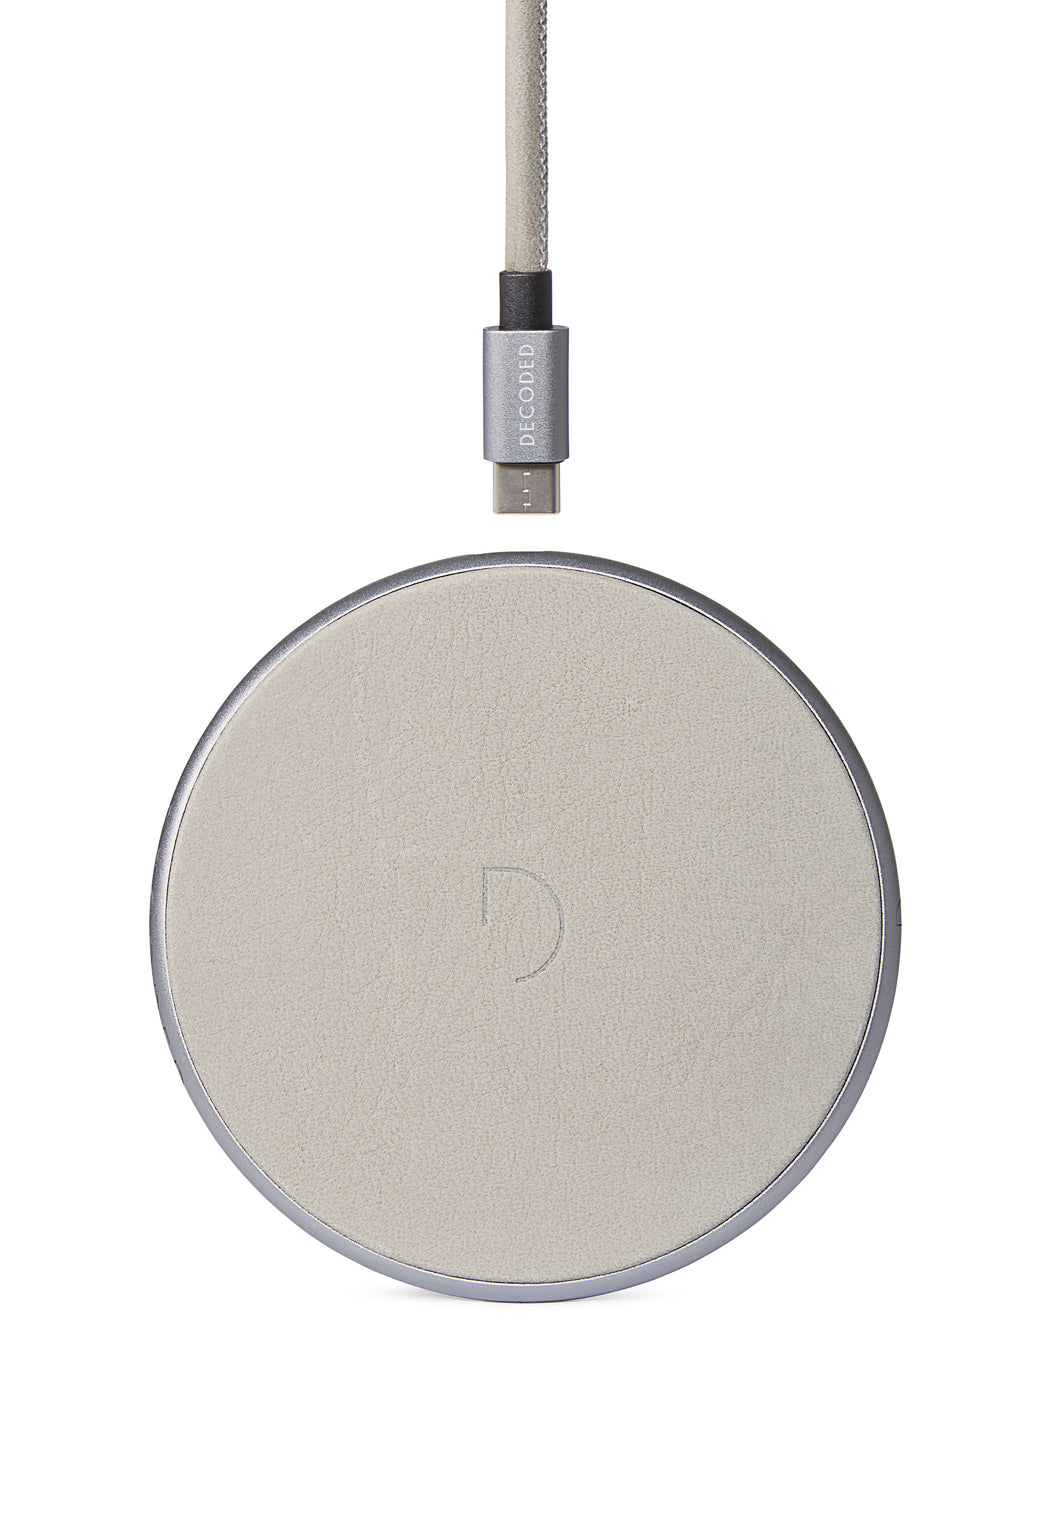 FastPad Wireless Charger Stone Grey / Silver-FastPad Wireless Charger-Decoded Bags